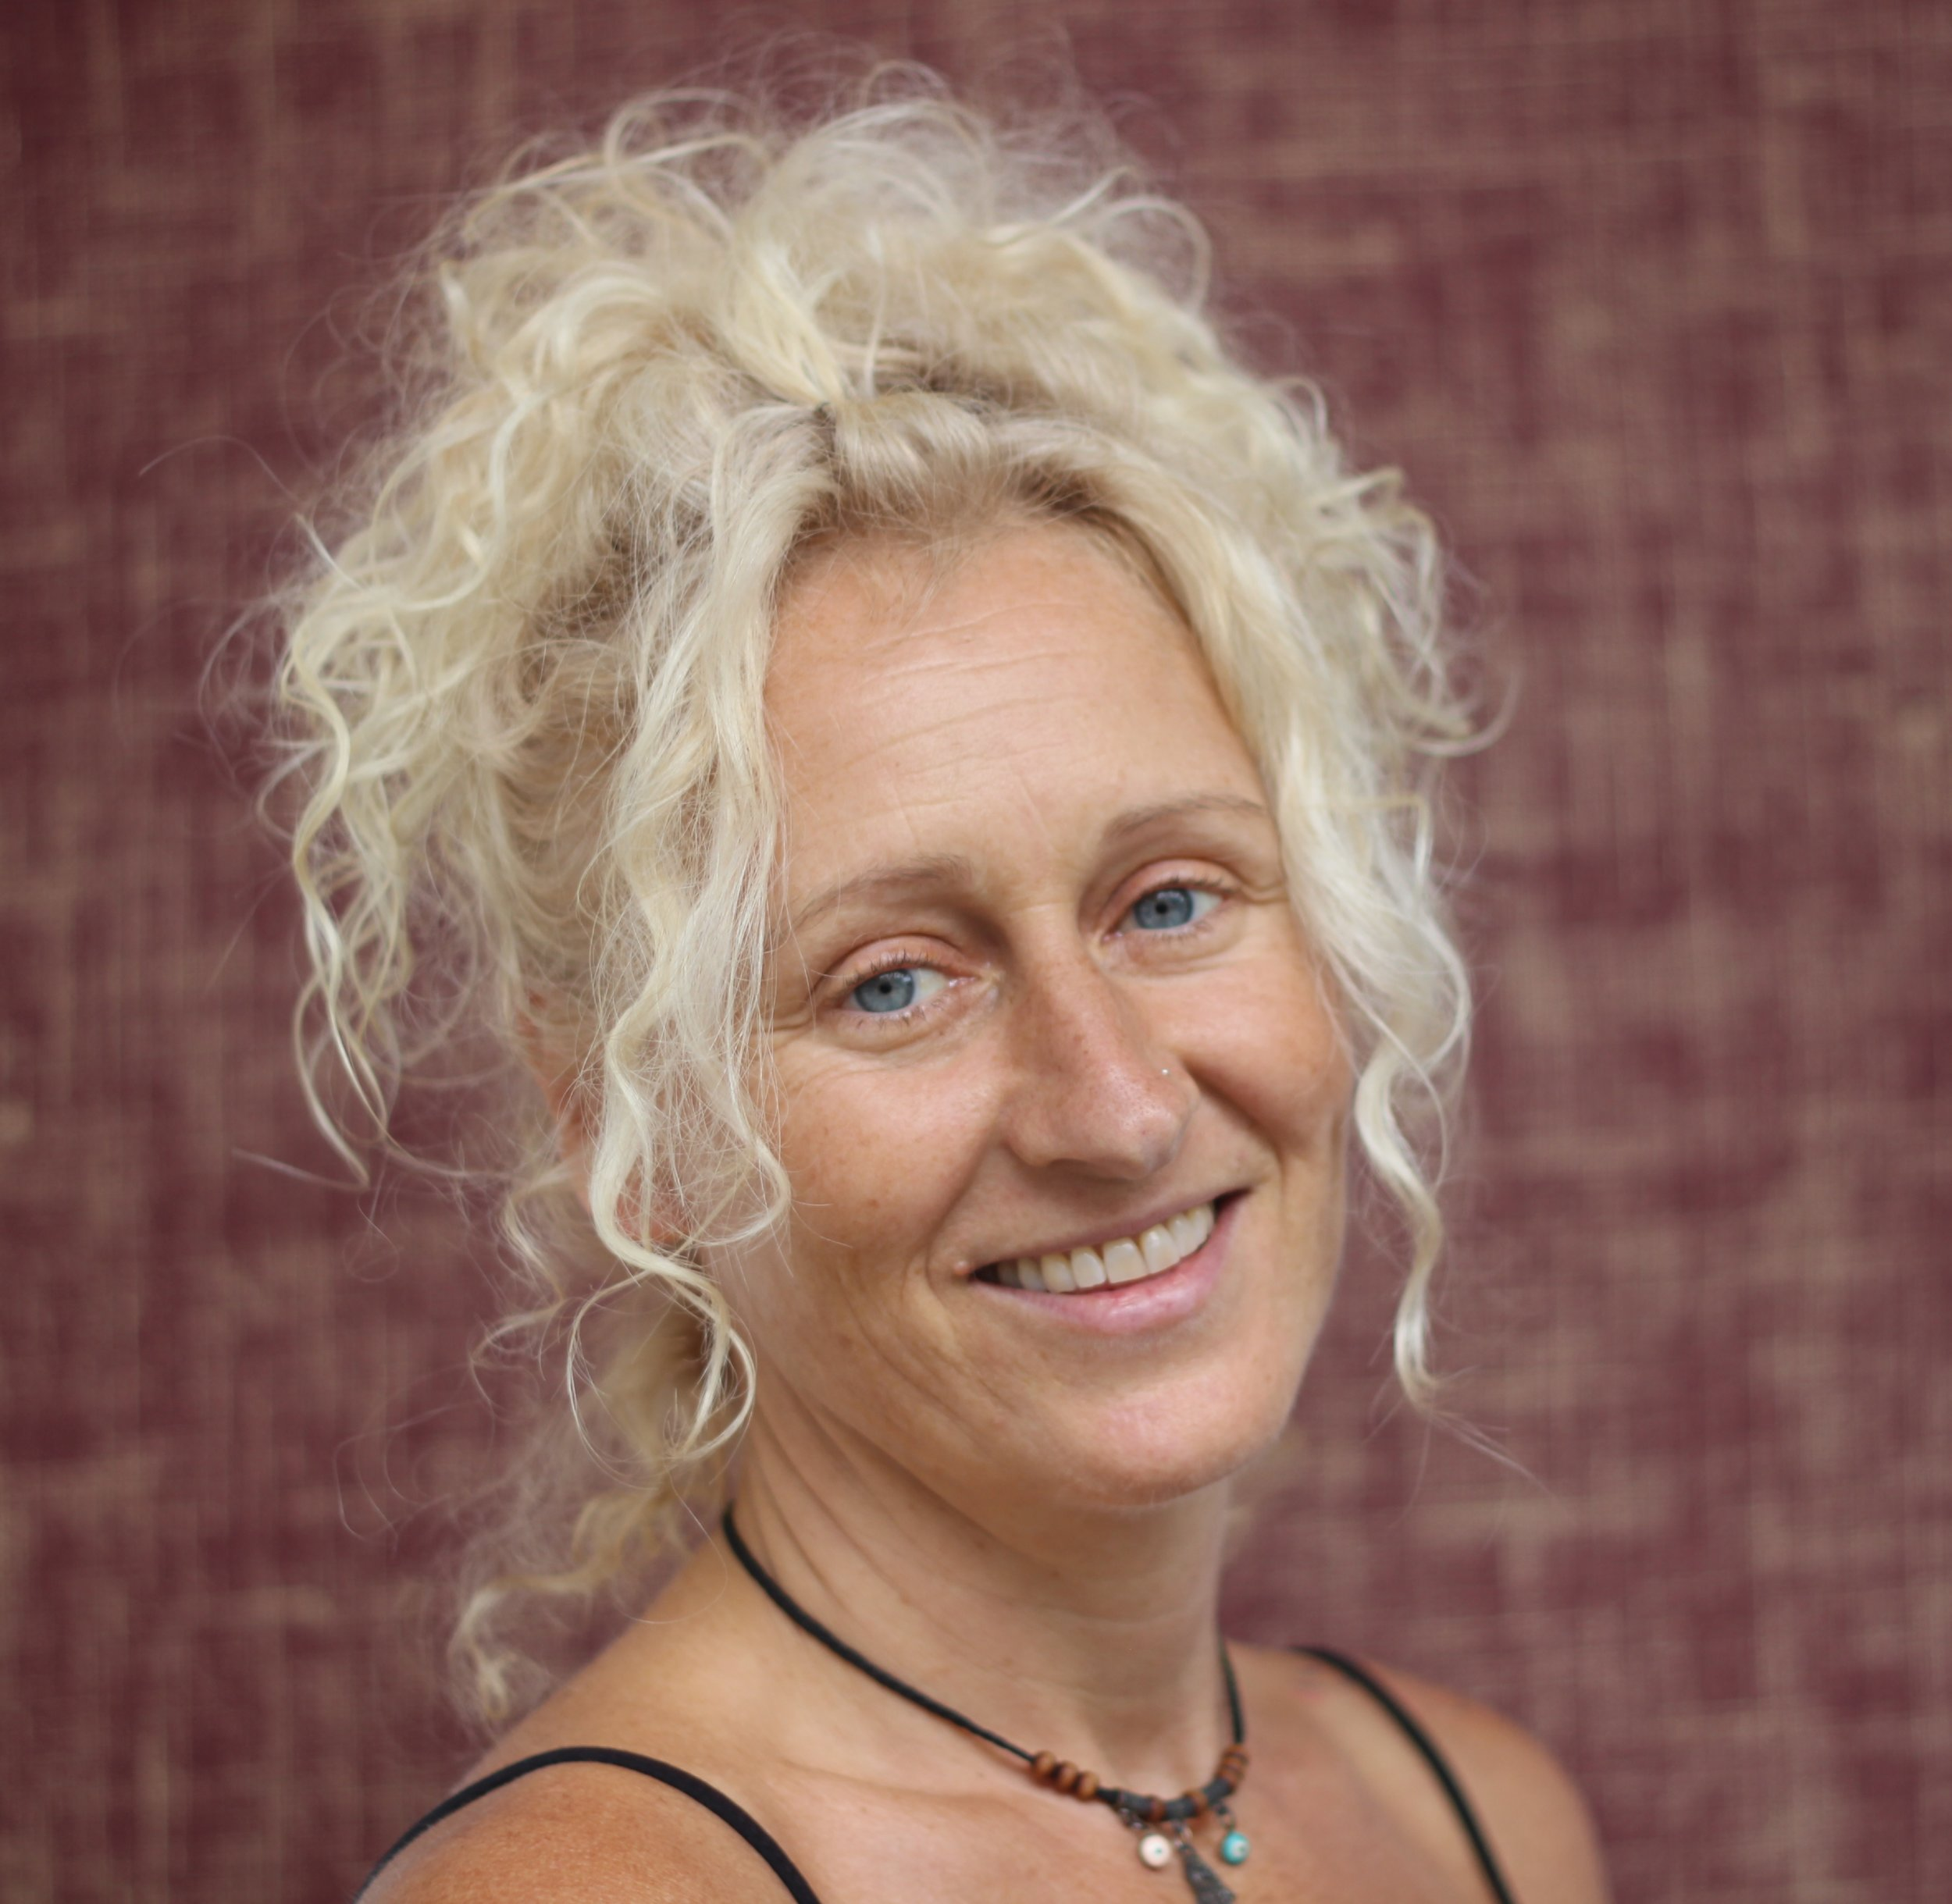 Ellie Steel    Saturday's 12.00pm - 13.15pm - Dharma Yoga    Fridays 13.00-14.30pm - Level 3 Practice     Ellie was first introduced to yoga whilst travelling in India in 1996 during which time she developed a deep self- practice and love of yoga. In 2006 she officially began to teach yoga which for her was a natural progression from her extensive background in alternative therapies and sports therapy.  Ellie is passionate about sharing the knowledge she accumulated over the past 20 years of study, practice and teaching and her teaching style reflects her knowledge of anatomy and the physical body as well as the spiritual aspects of yoga.  Ellie first practiced and studied Dharma Yoga with Sri Dharma Mittra in 2006 and this was the turning point in her life and yoga practice. After training in Ashtanga and Vinyasa yoga, Ellie then took her studies further and undertook an advanced 500hr Dharma Yoga training under the guidance of her Guru Sri Dharma at his New York studio.  Ellie continues to visit her guru in New York when she can and in London she practices regularly with her mentor Mark Kan.  She believes that yoga is a constant journey of learning; Ellie has teaching qualifications in Rocket yoga, Vinyasa flow and Ashtanga as well as a 500hr advanced teaching qualification in Dharma yoga, she is also trained in sports therapy.    Ellie's classes start with a calming breathing practice followed by a short grounding meditation to prepare body and mind for the physical practice.  She takes the key poses of the Dharma asana......twists, balances, inversions and backbends and combines them to create a dynamic and fun flowing practice. She always ensures there are plenty of variations for all levels of students and you are always encouraged to practice mindfully and without ego, listening to your body and allowing body and breath to flow together as one making your practice no matter how dynamic into your moving meditation.